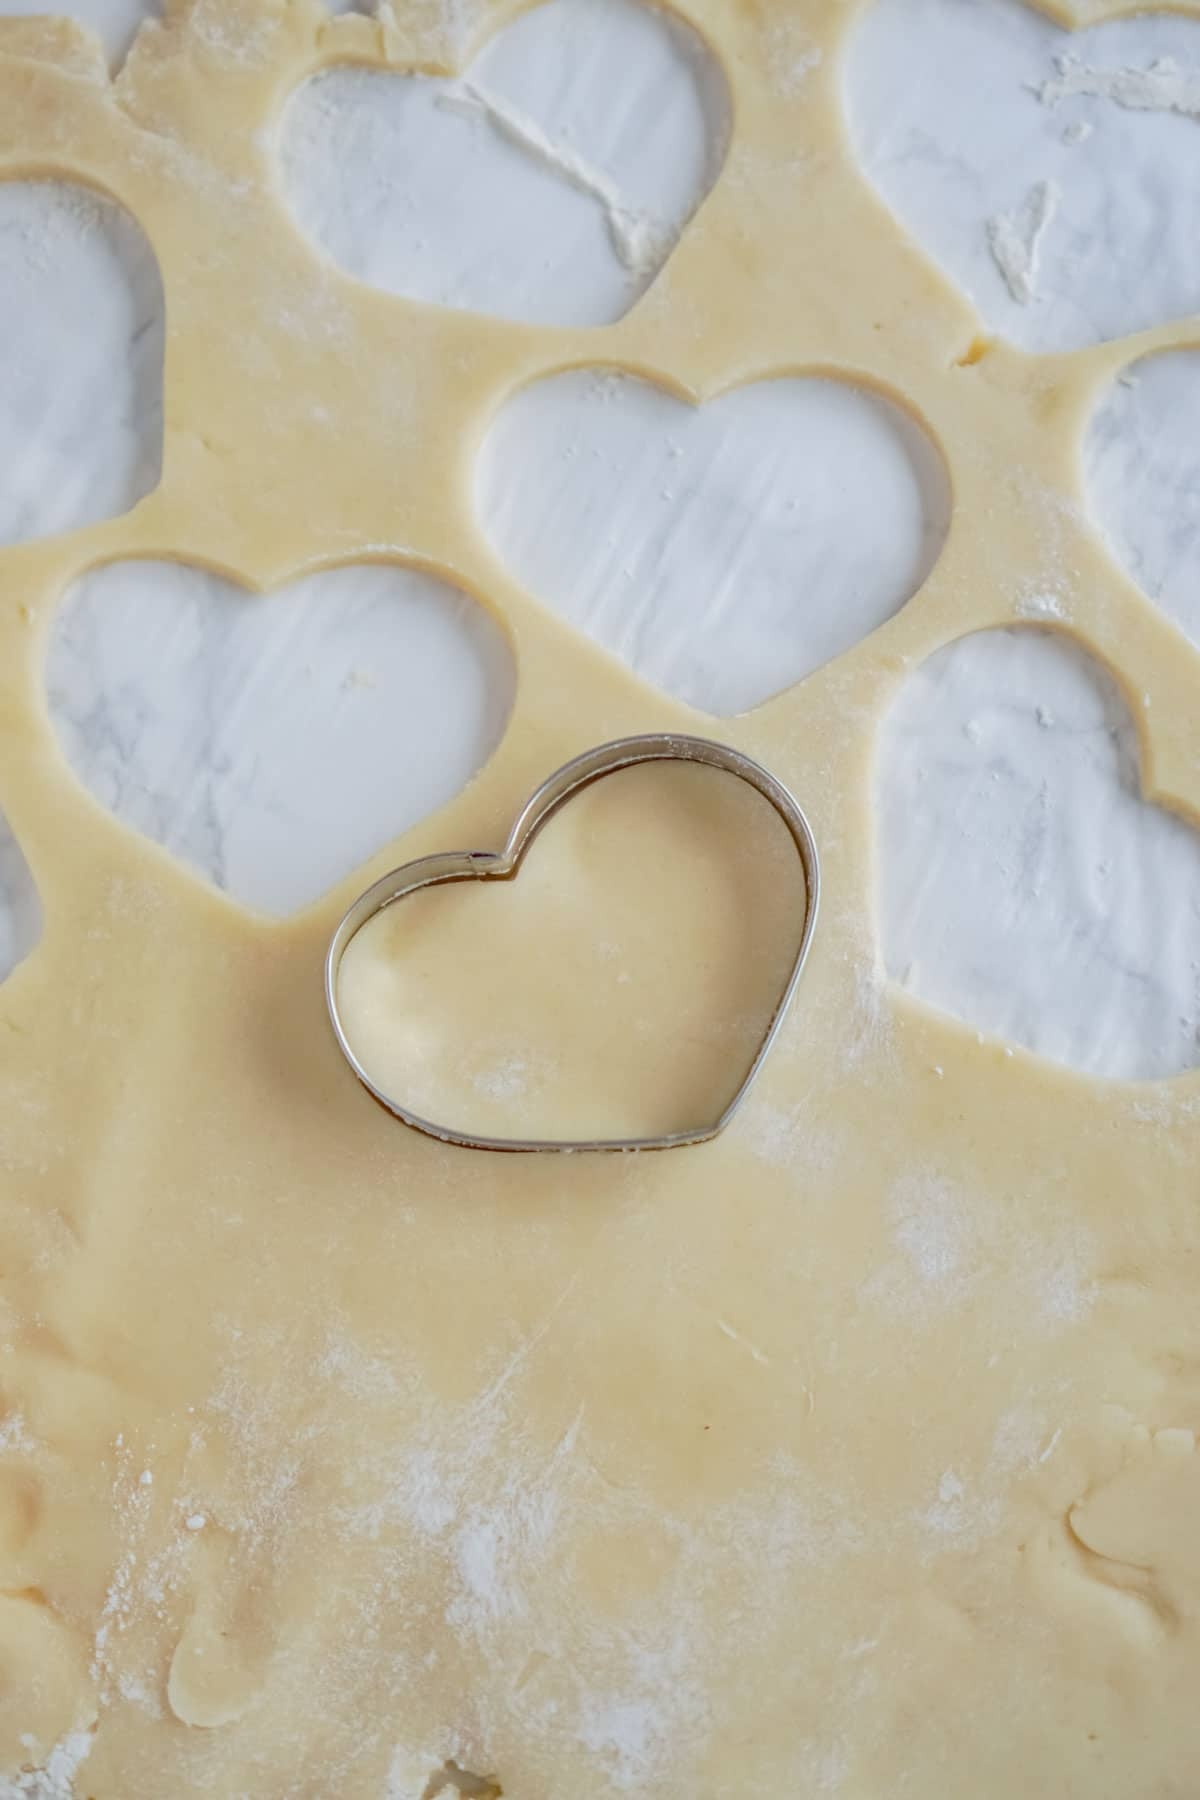 Heart shaped cookie cutter with cookie dough